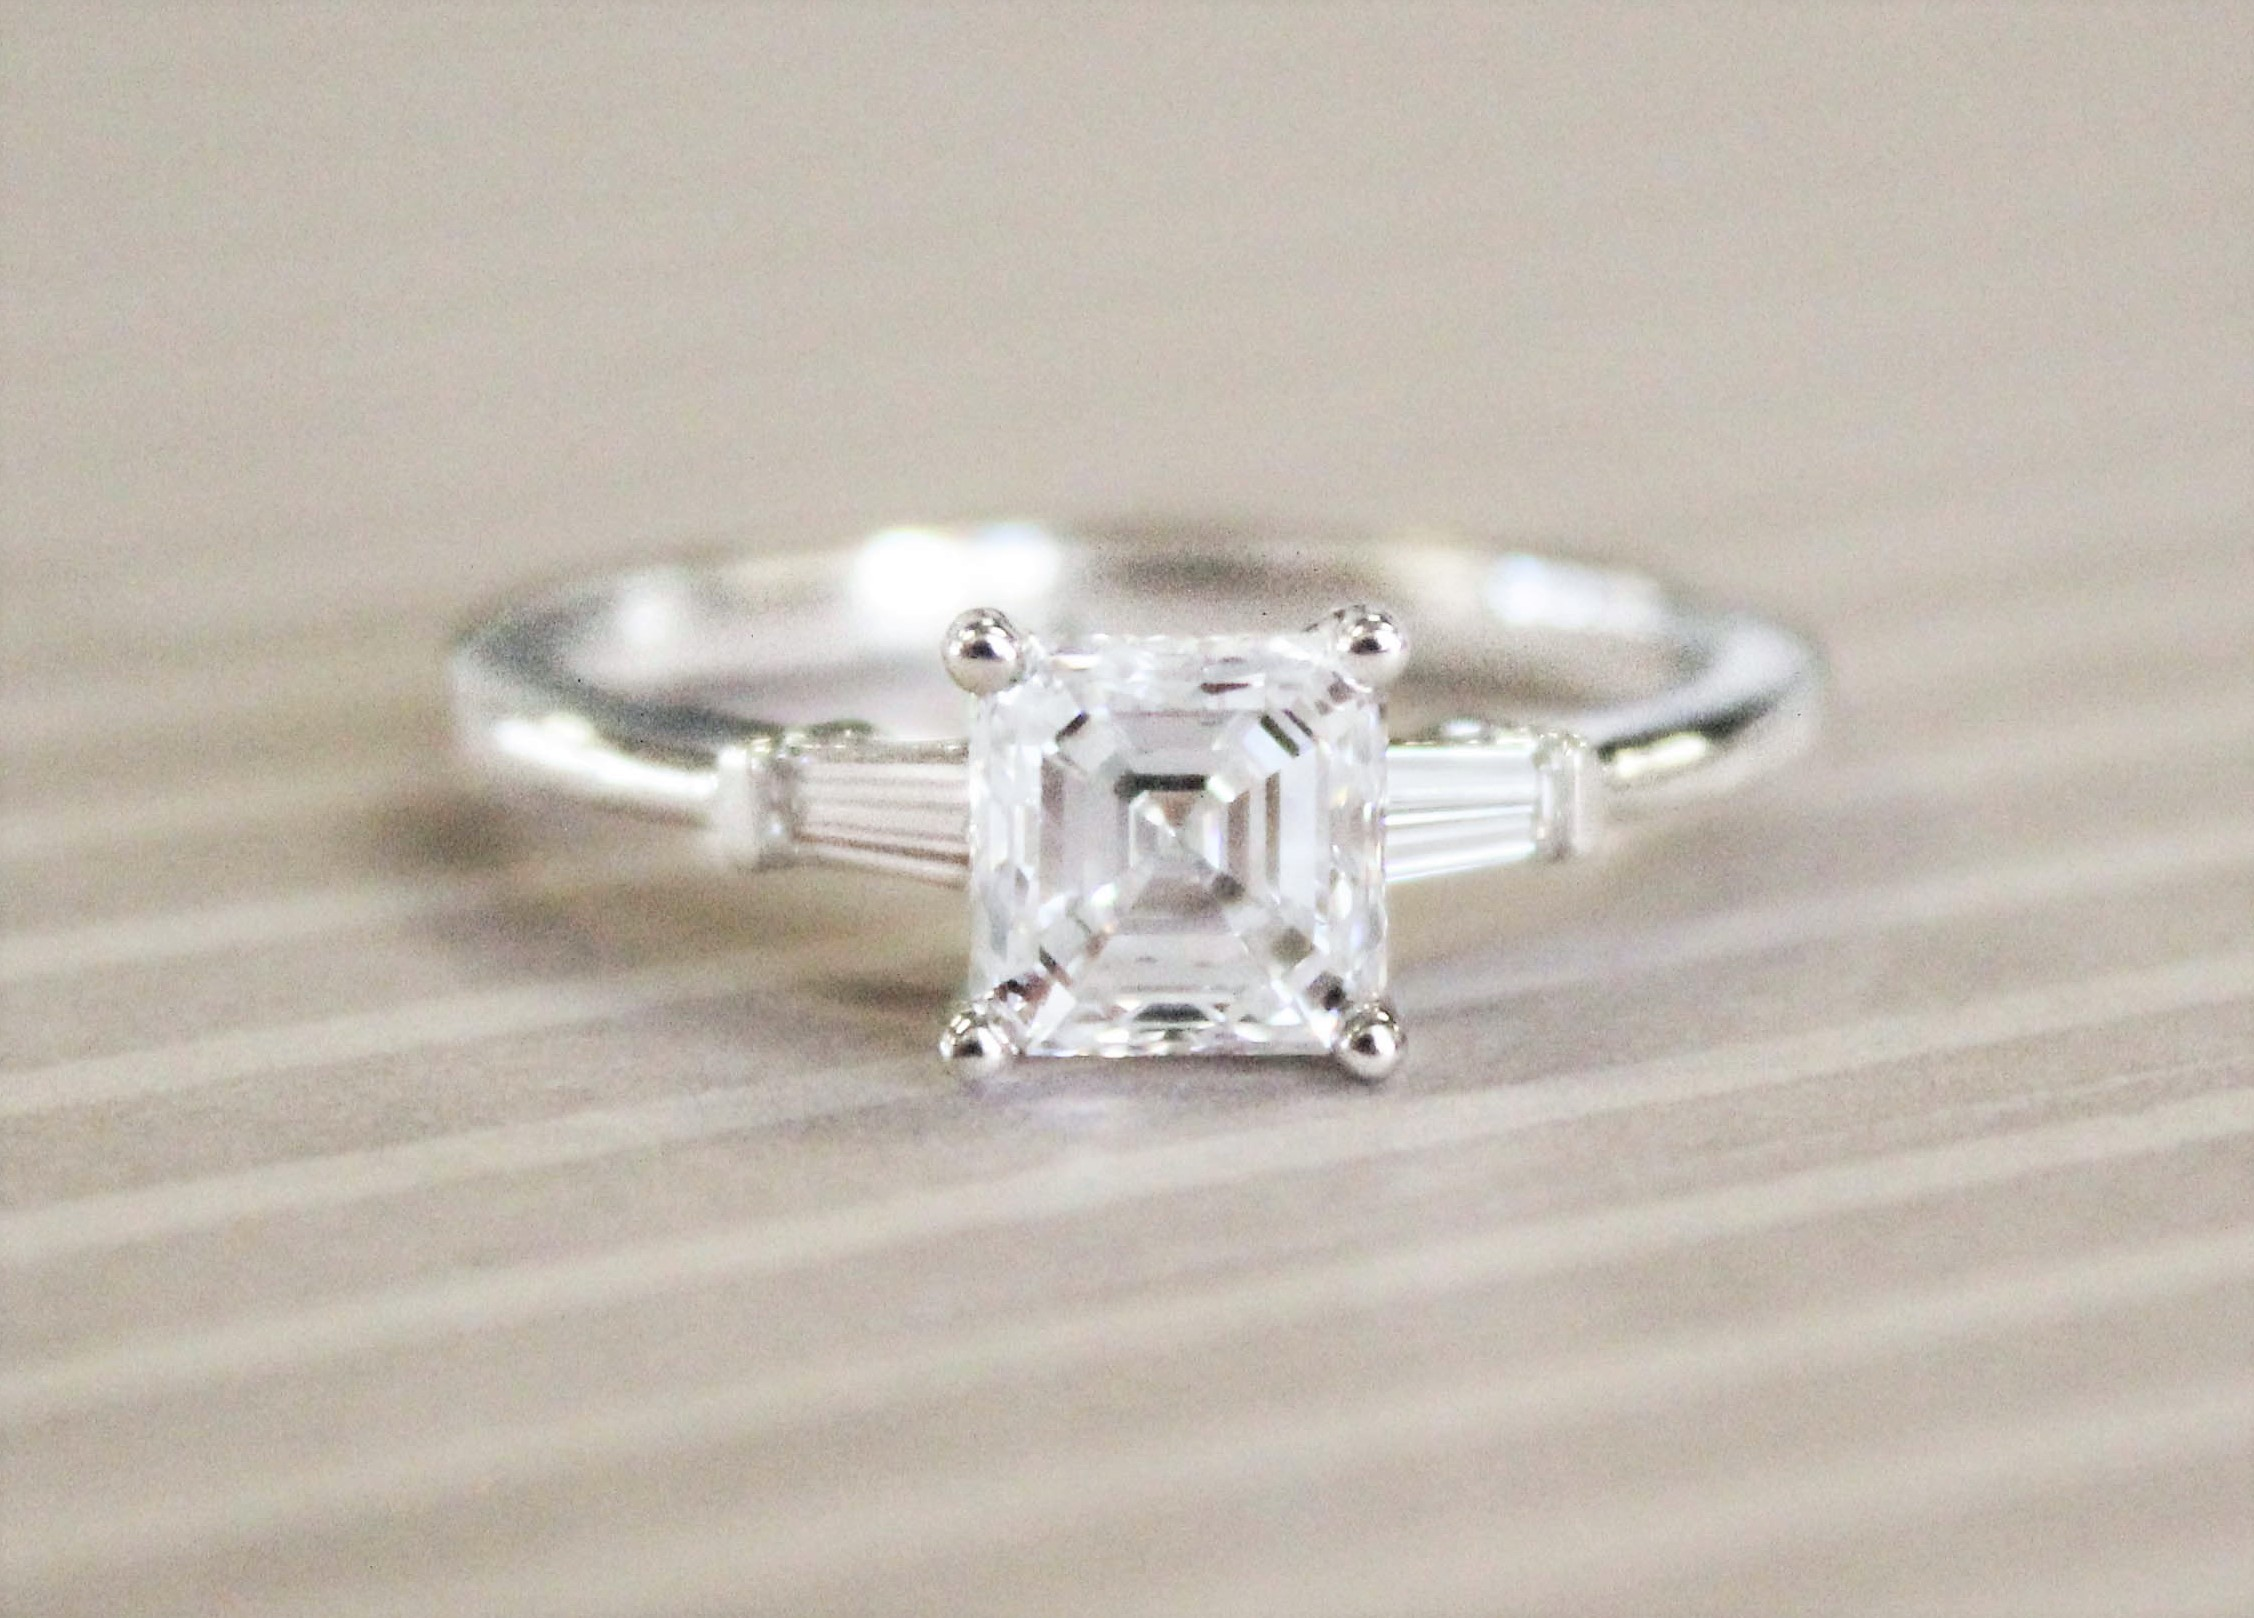 baguette diamond ring designs brilliant earth wedding bands Harkening back to the Art Deco era baguette diamonds make for a sleek and sophisticated look when set in wedding bands or engagement rings